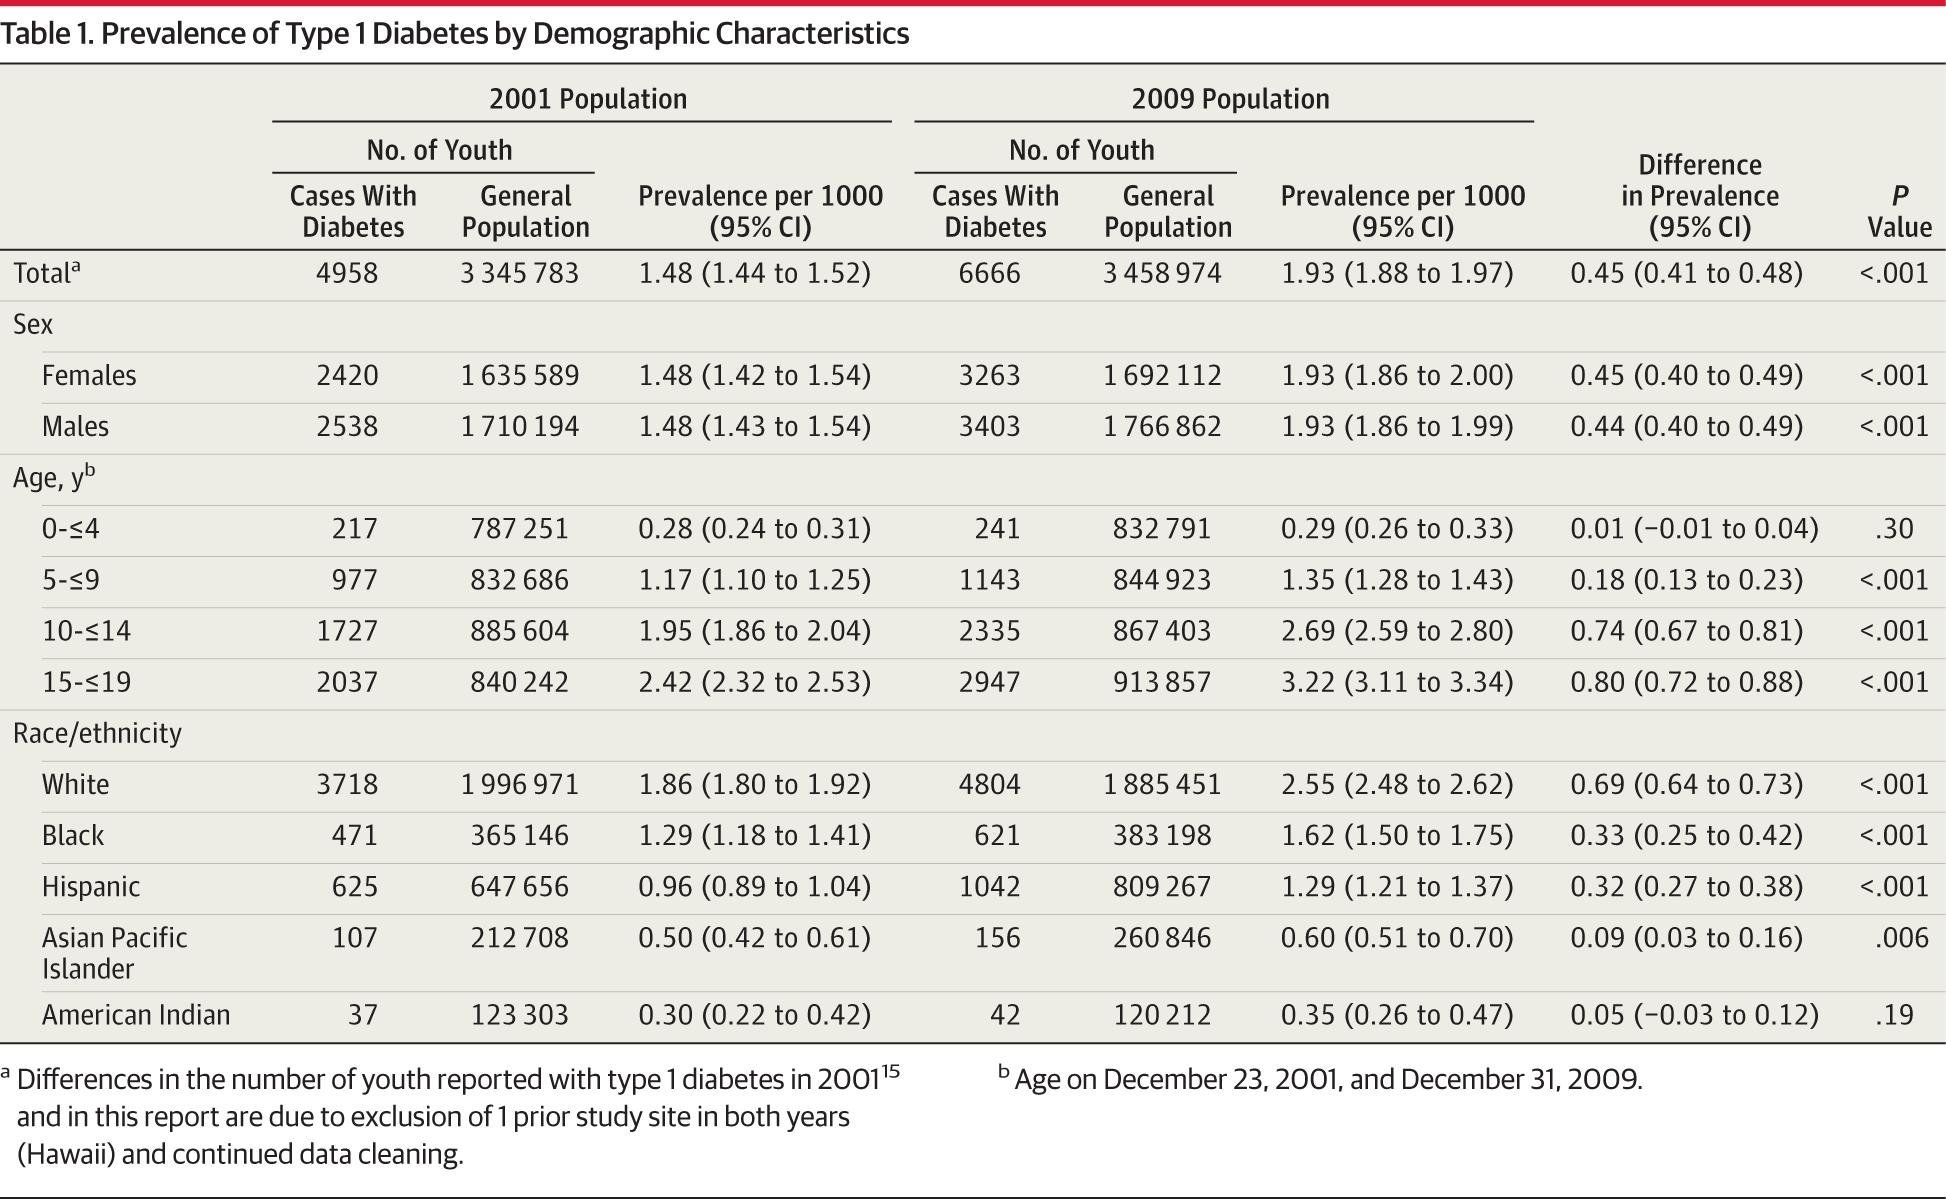 Prevalence Of Type 1 And Type 2 Diabetes Among Children And Adolescents From 2001 To 2009